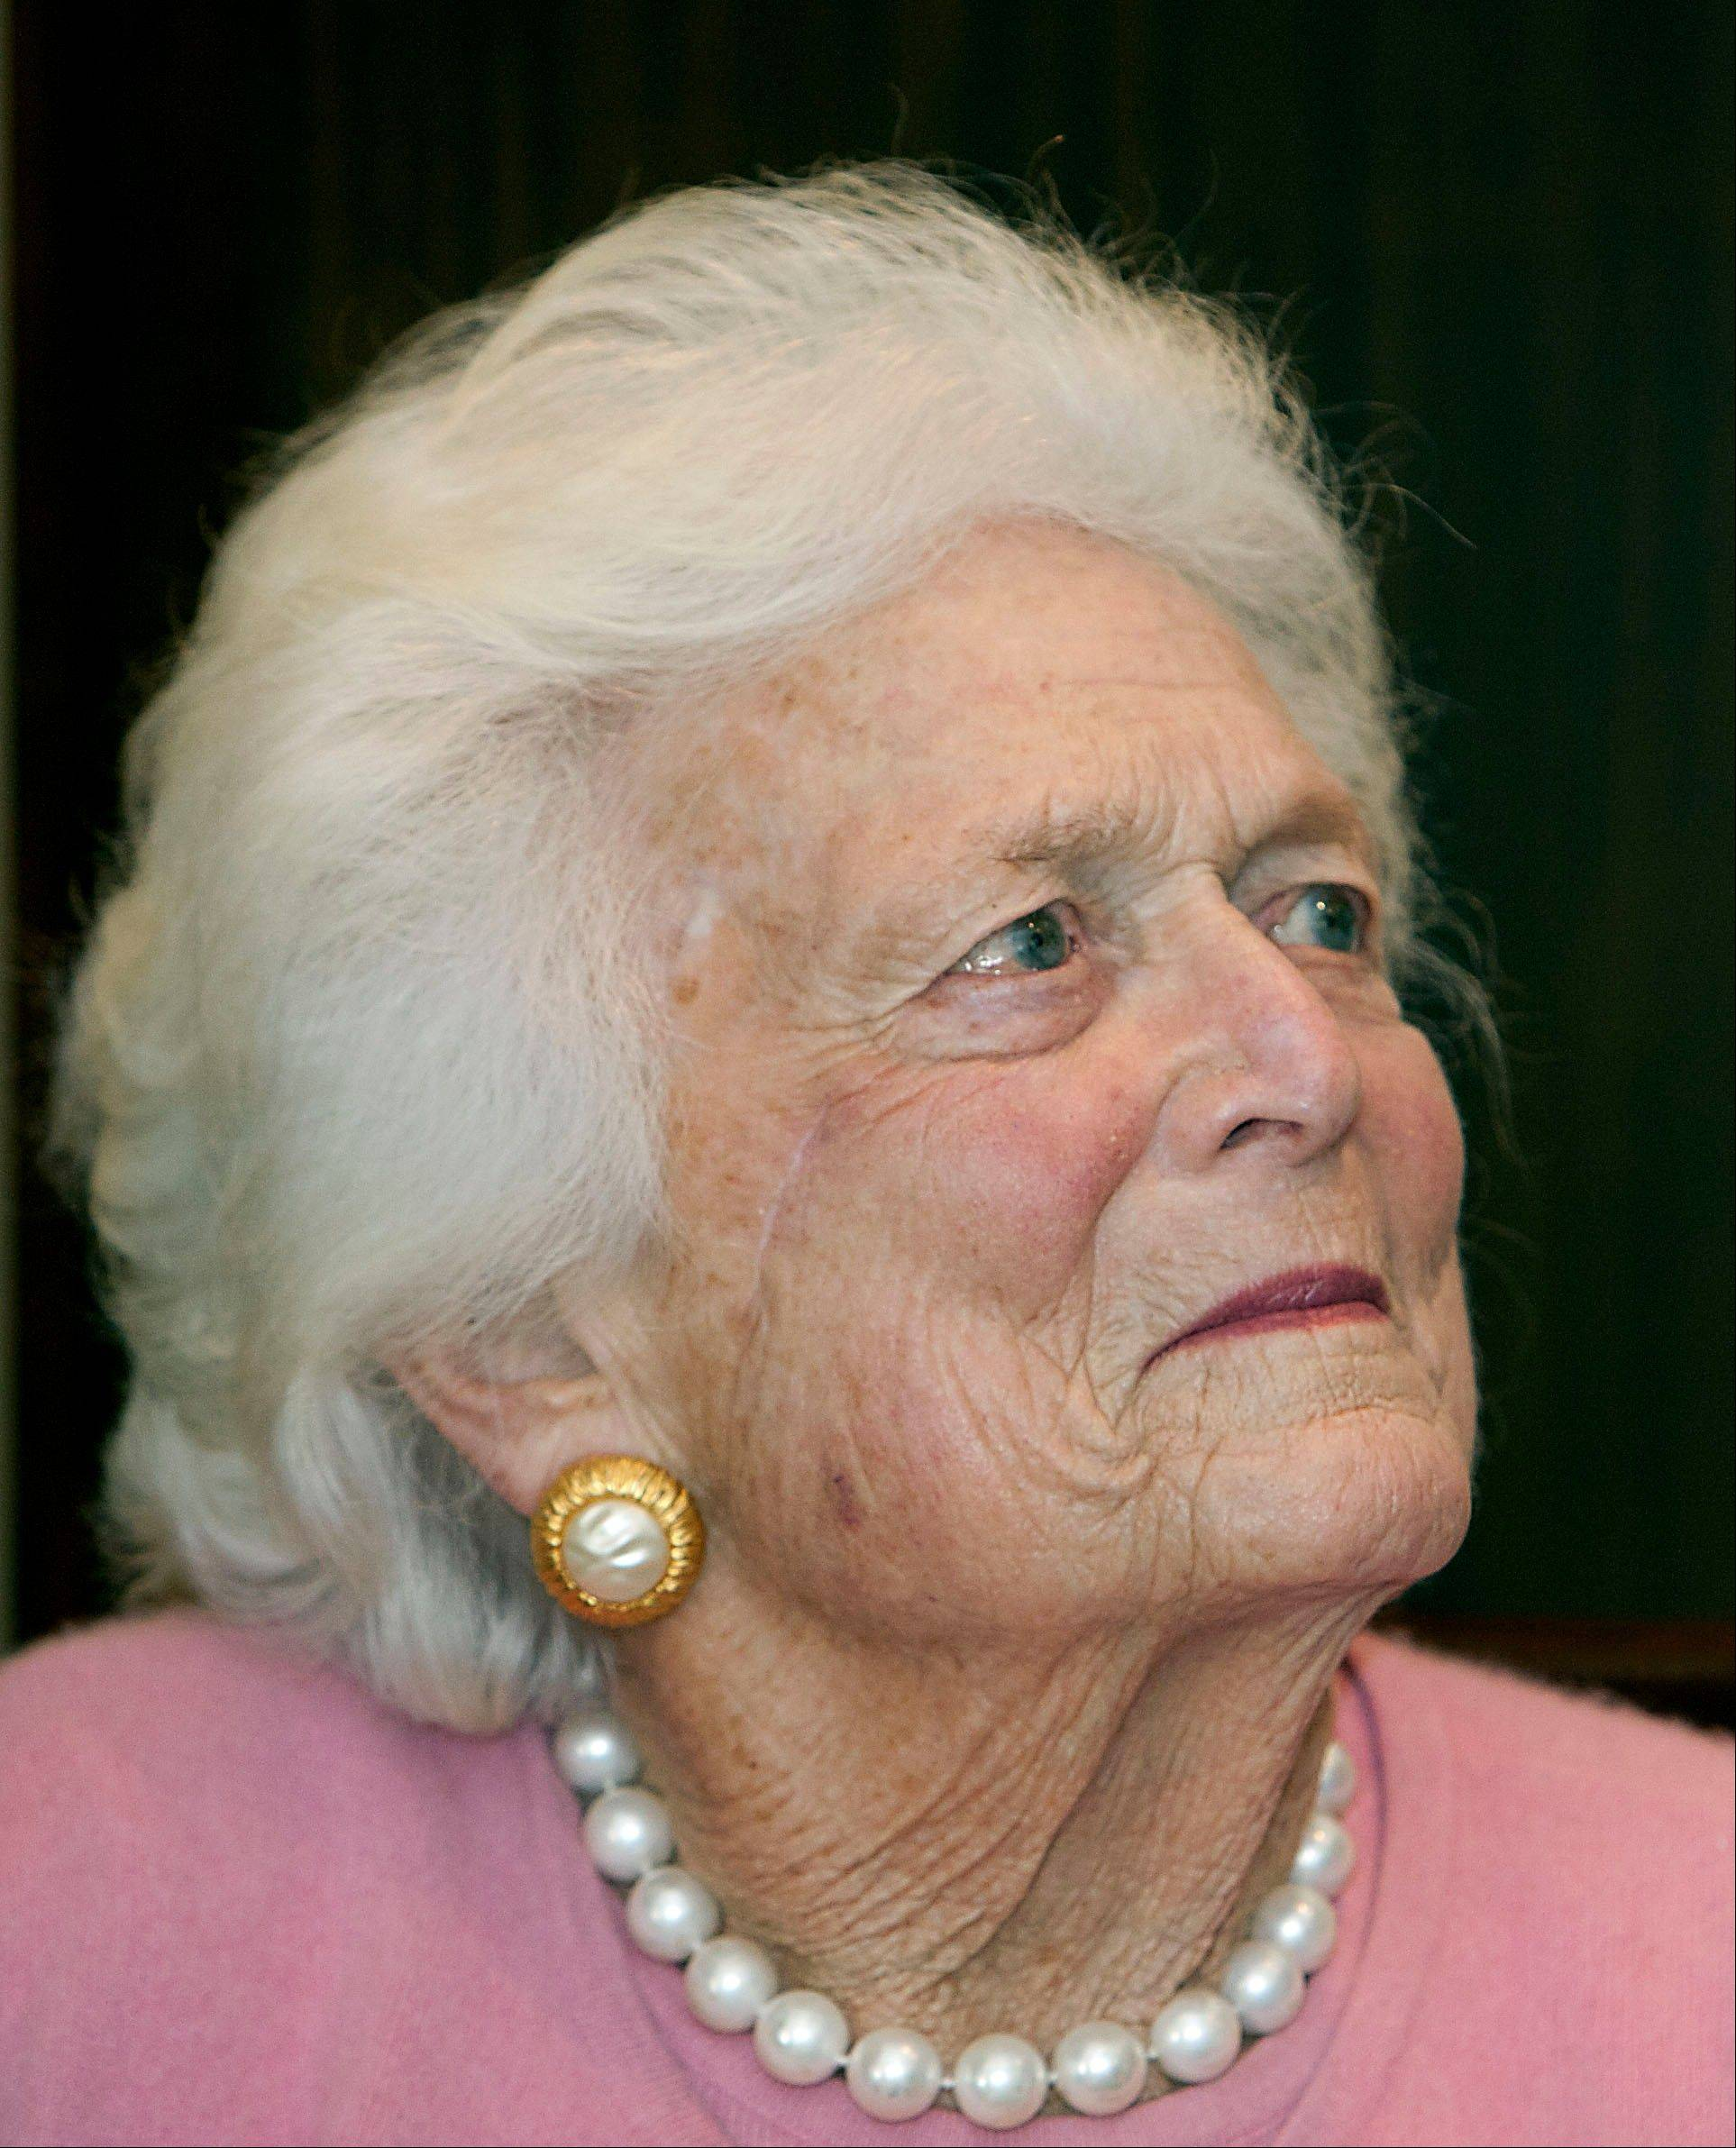 Associated Press/Houston Chronicle, James Nielsen Former first Lady Barbara Bush looks on during a ceremony on Dec. 23 at President Bush�s office in Houston. She has been hospitalized in Houston with a respiratory-related issue. A statement Tuesday night from the office of her husband, former President George H.W. Bush, said she was admitted to Houston Methodist Hospital on Monday.